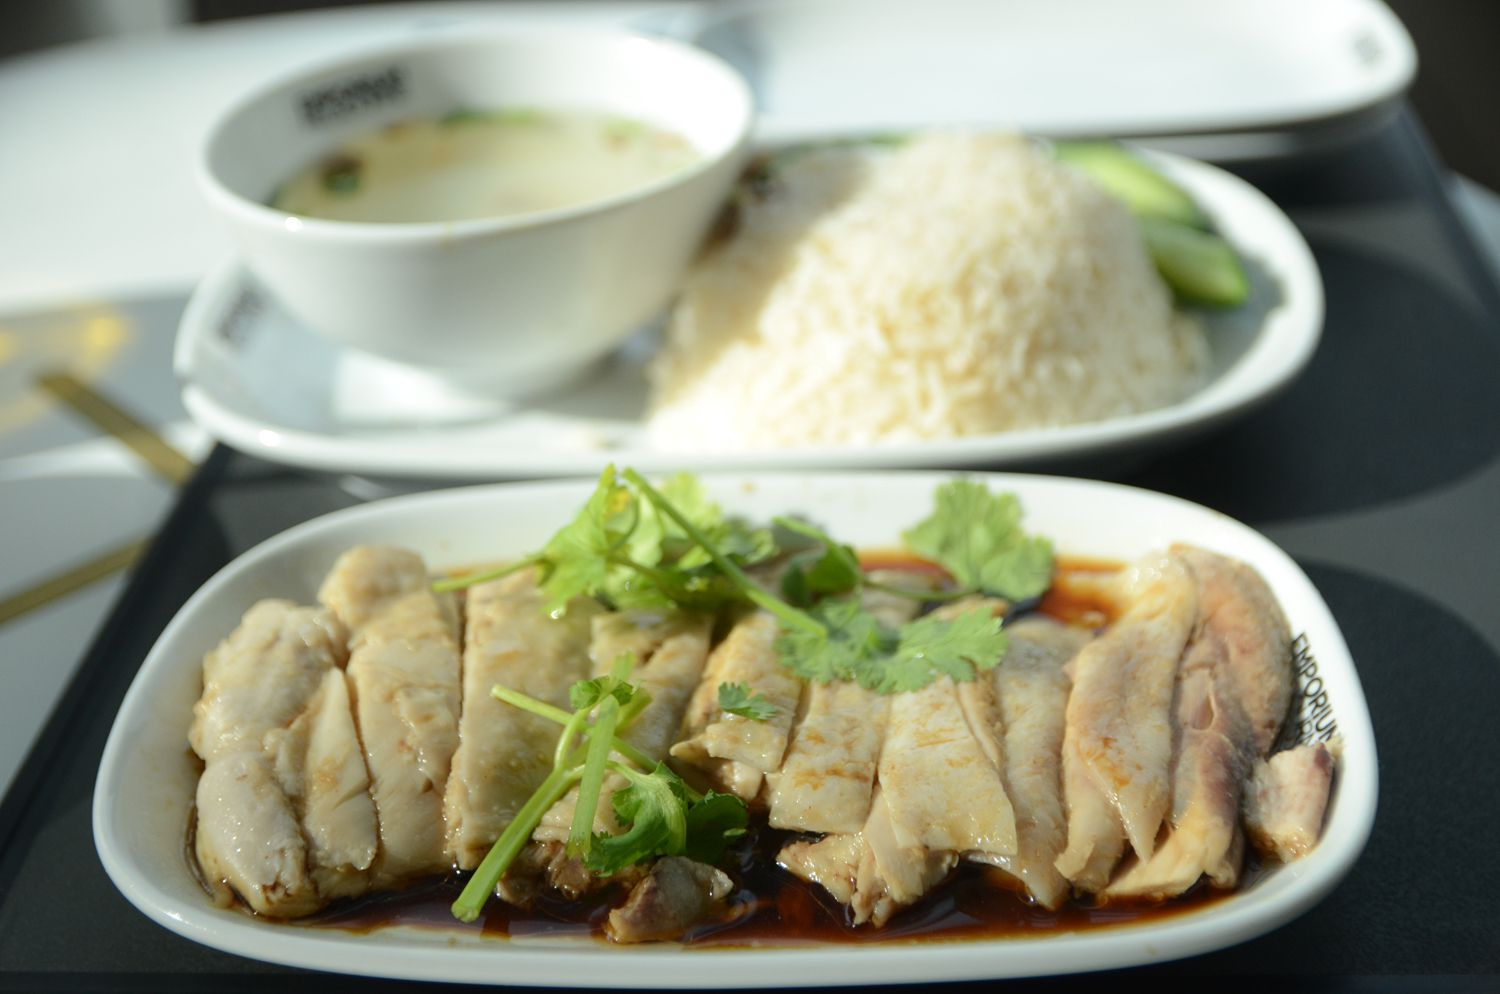 Hainanese Chicken Rice A Very Detailed Recipe-9910